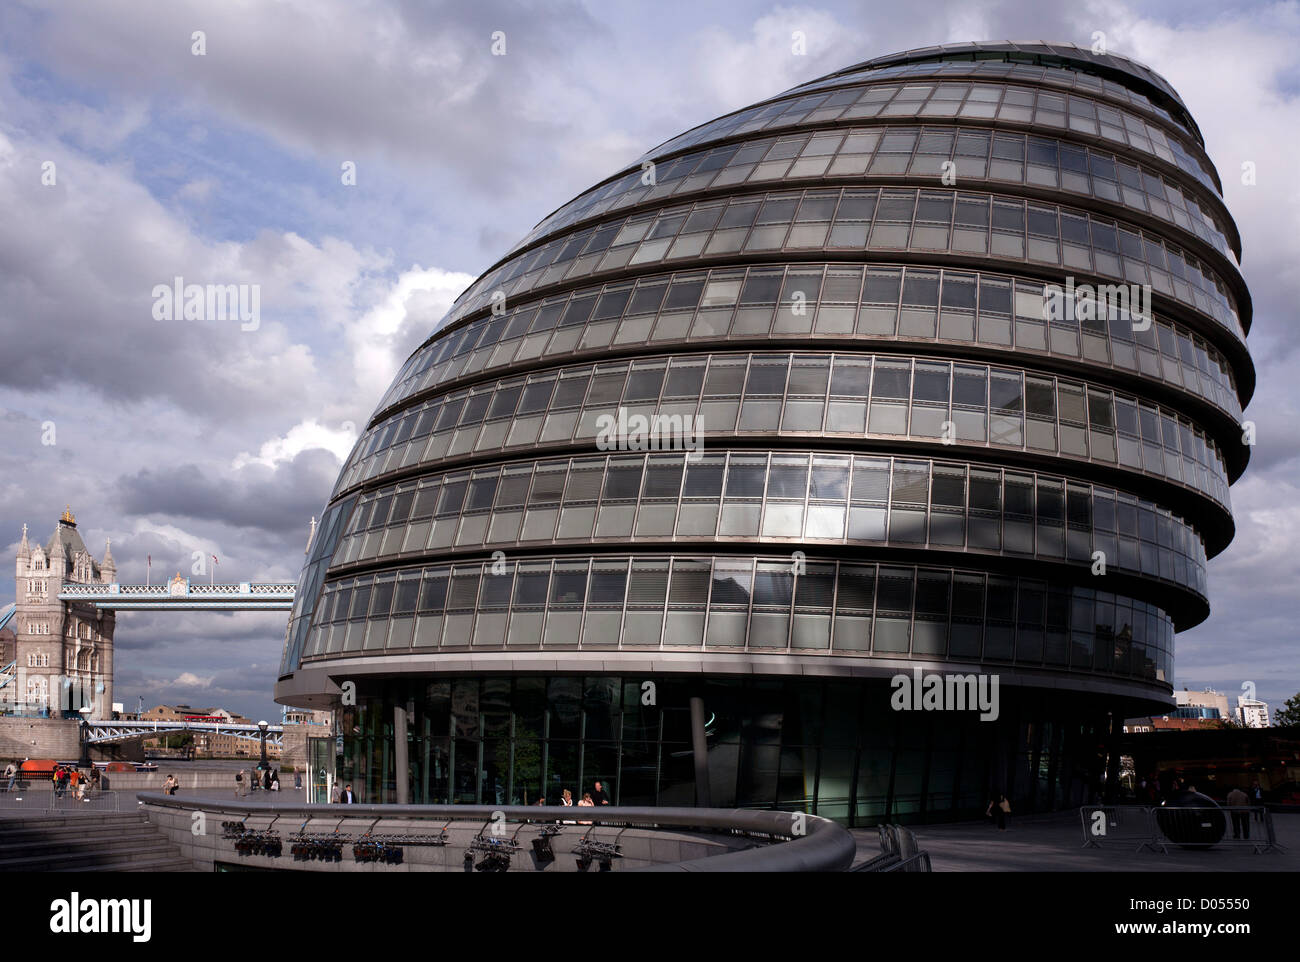 City Hall is the headquarters of the Greater London Authority and was designed by  the famous architect Norman Foster. - Stock Image